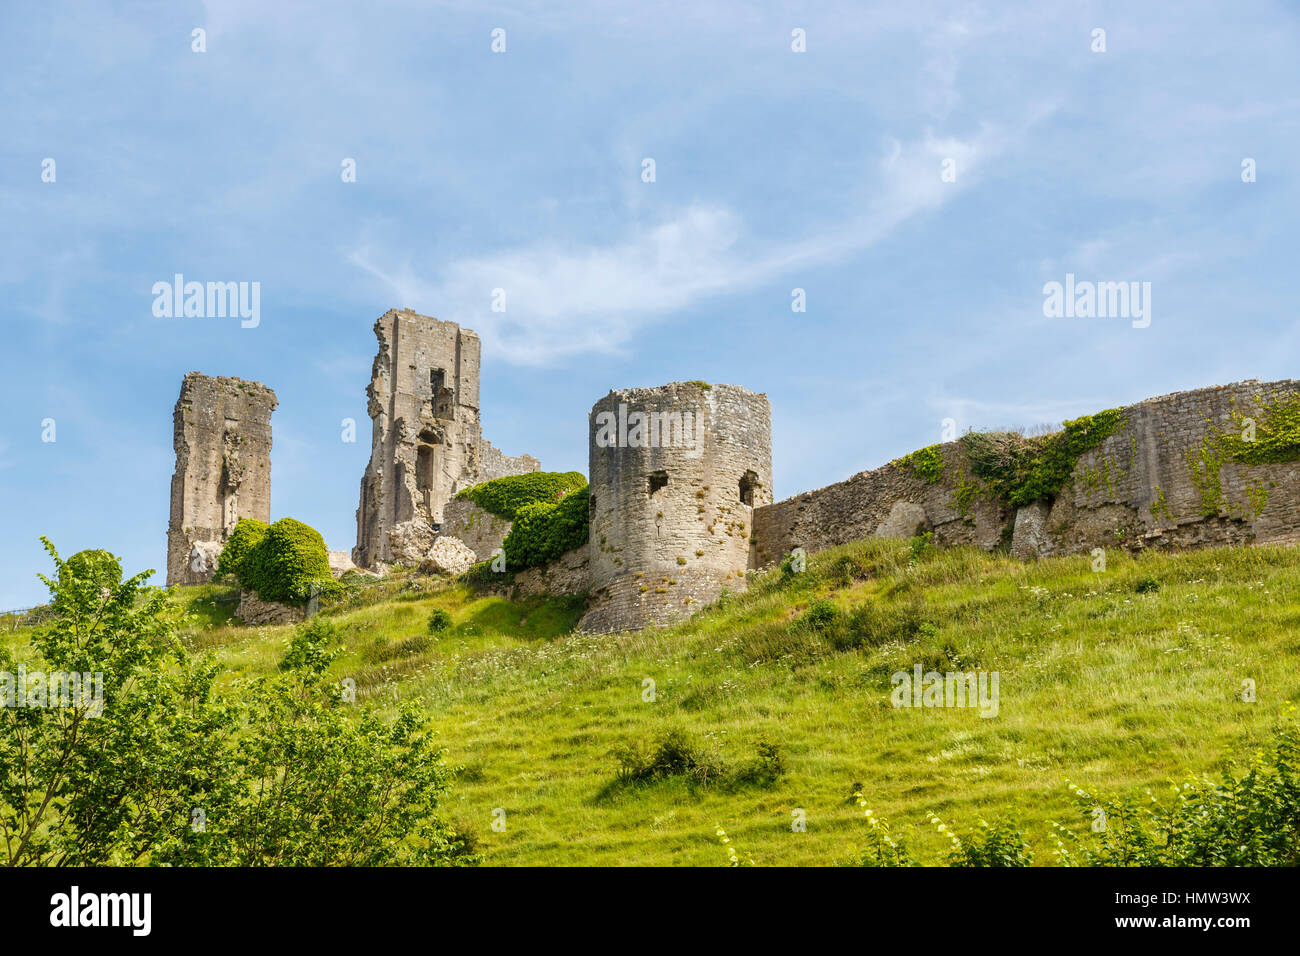 The hilltop ruins, walls and towers of Corfe Castle, survivor of the English Civil War, in Corfe, Dorset, south - Stock Image